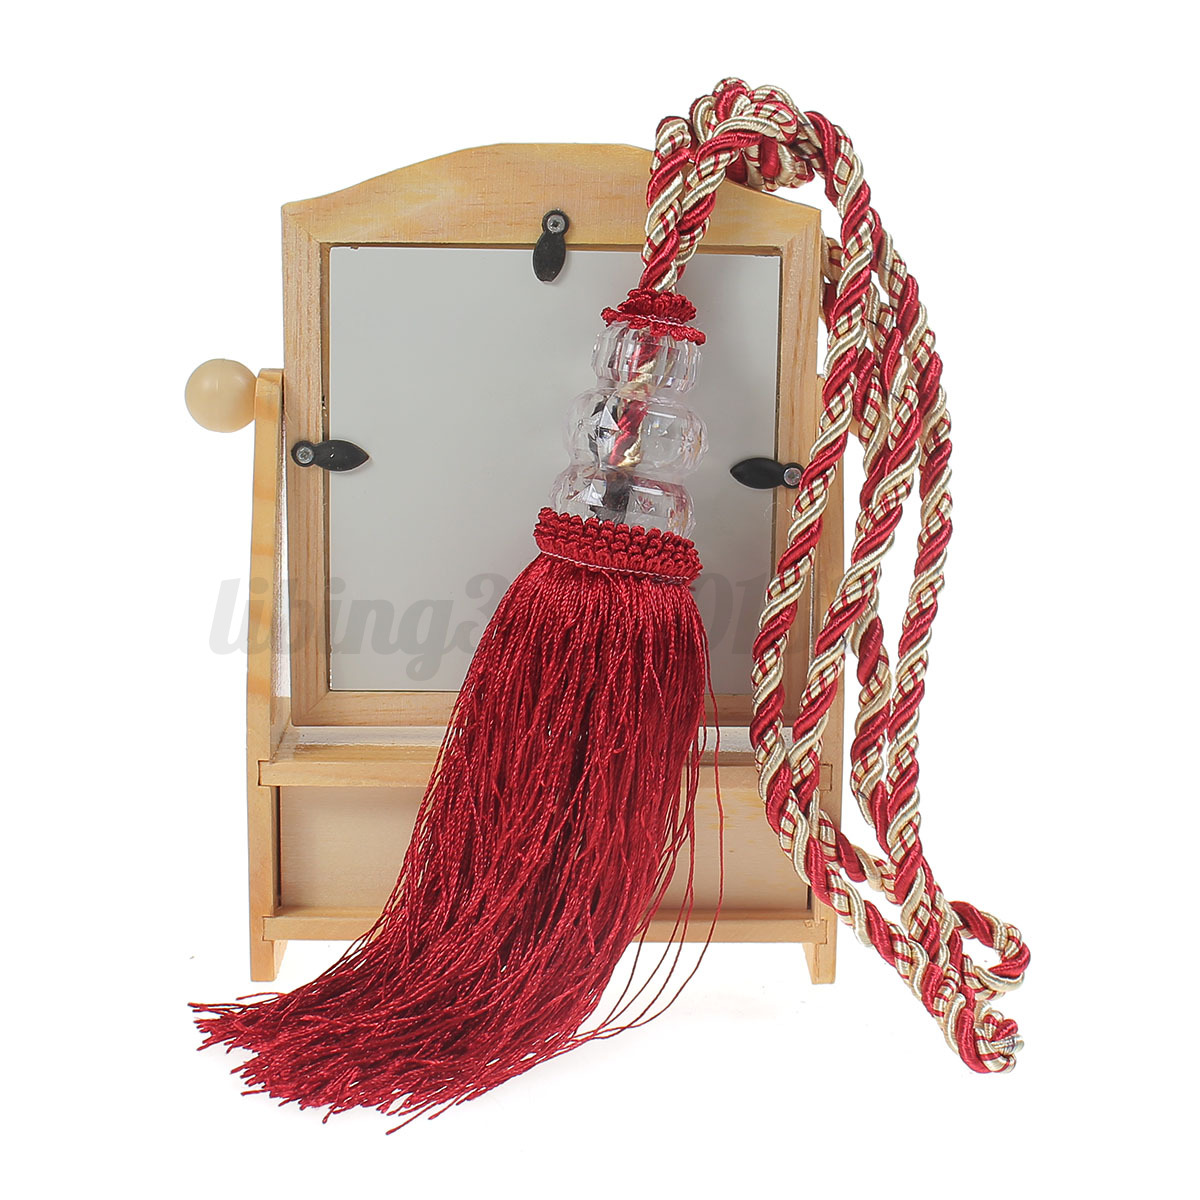 2x perlen quasten raffhalter gardinen kordel tassel troddel anh nger vorhang19cm ebay. Black Bedroom Furniture Sets. Home Design Ideas